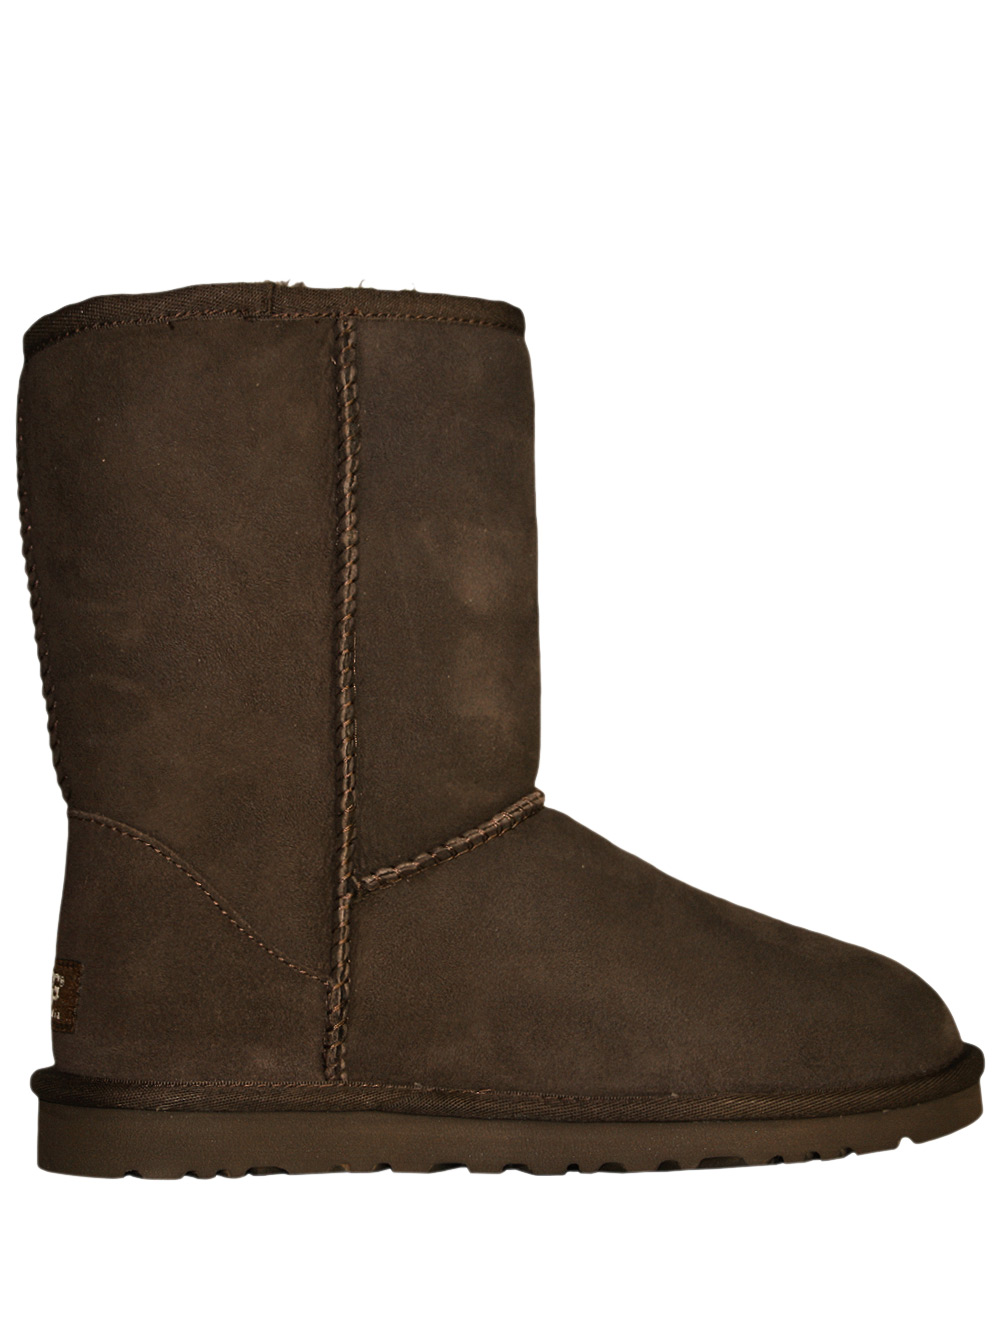 damen lammfell ugg boots schuhe stiefel classic choco braun neu ebay. Black Bedroom Furniture Sets. Home Design Ideas